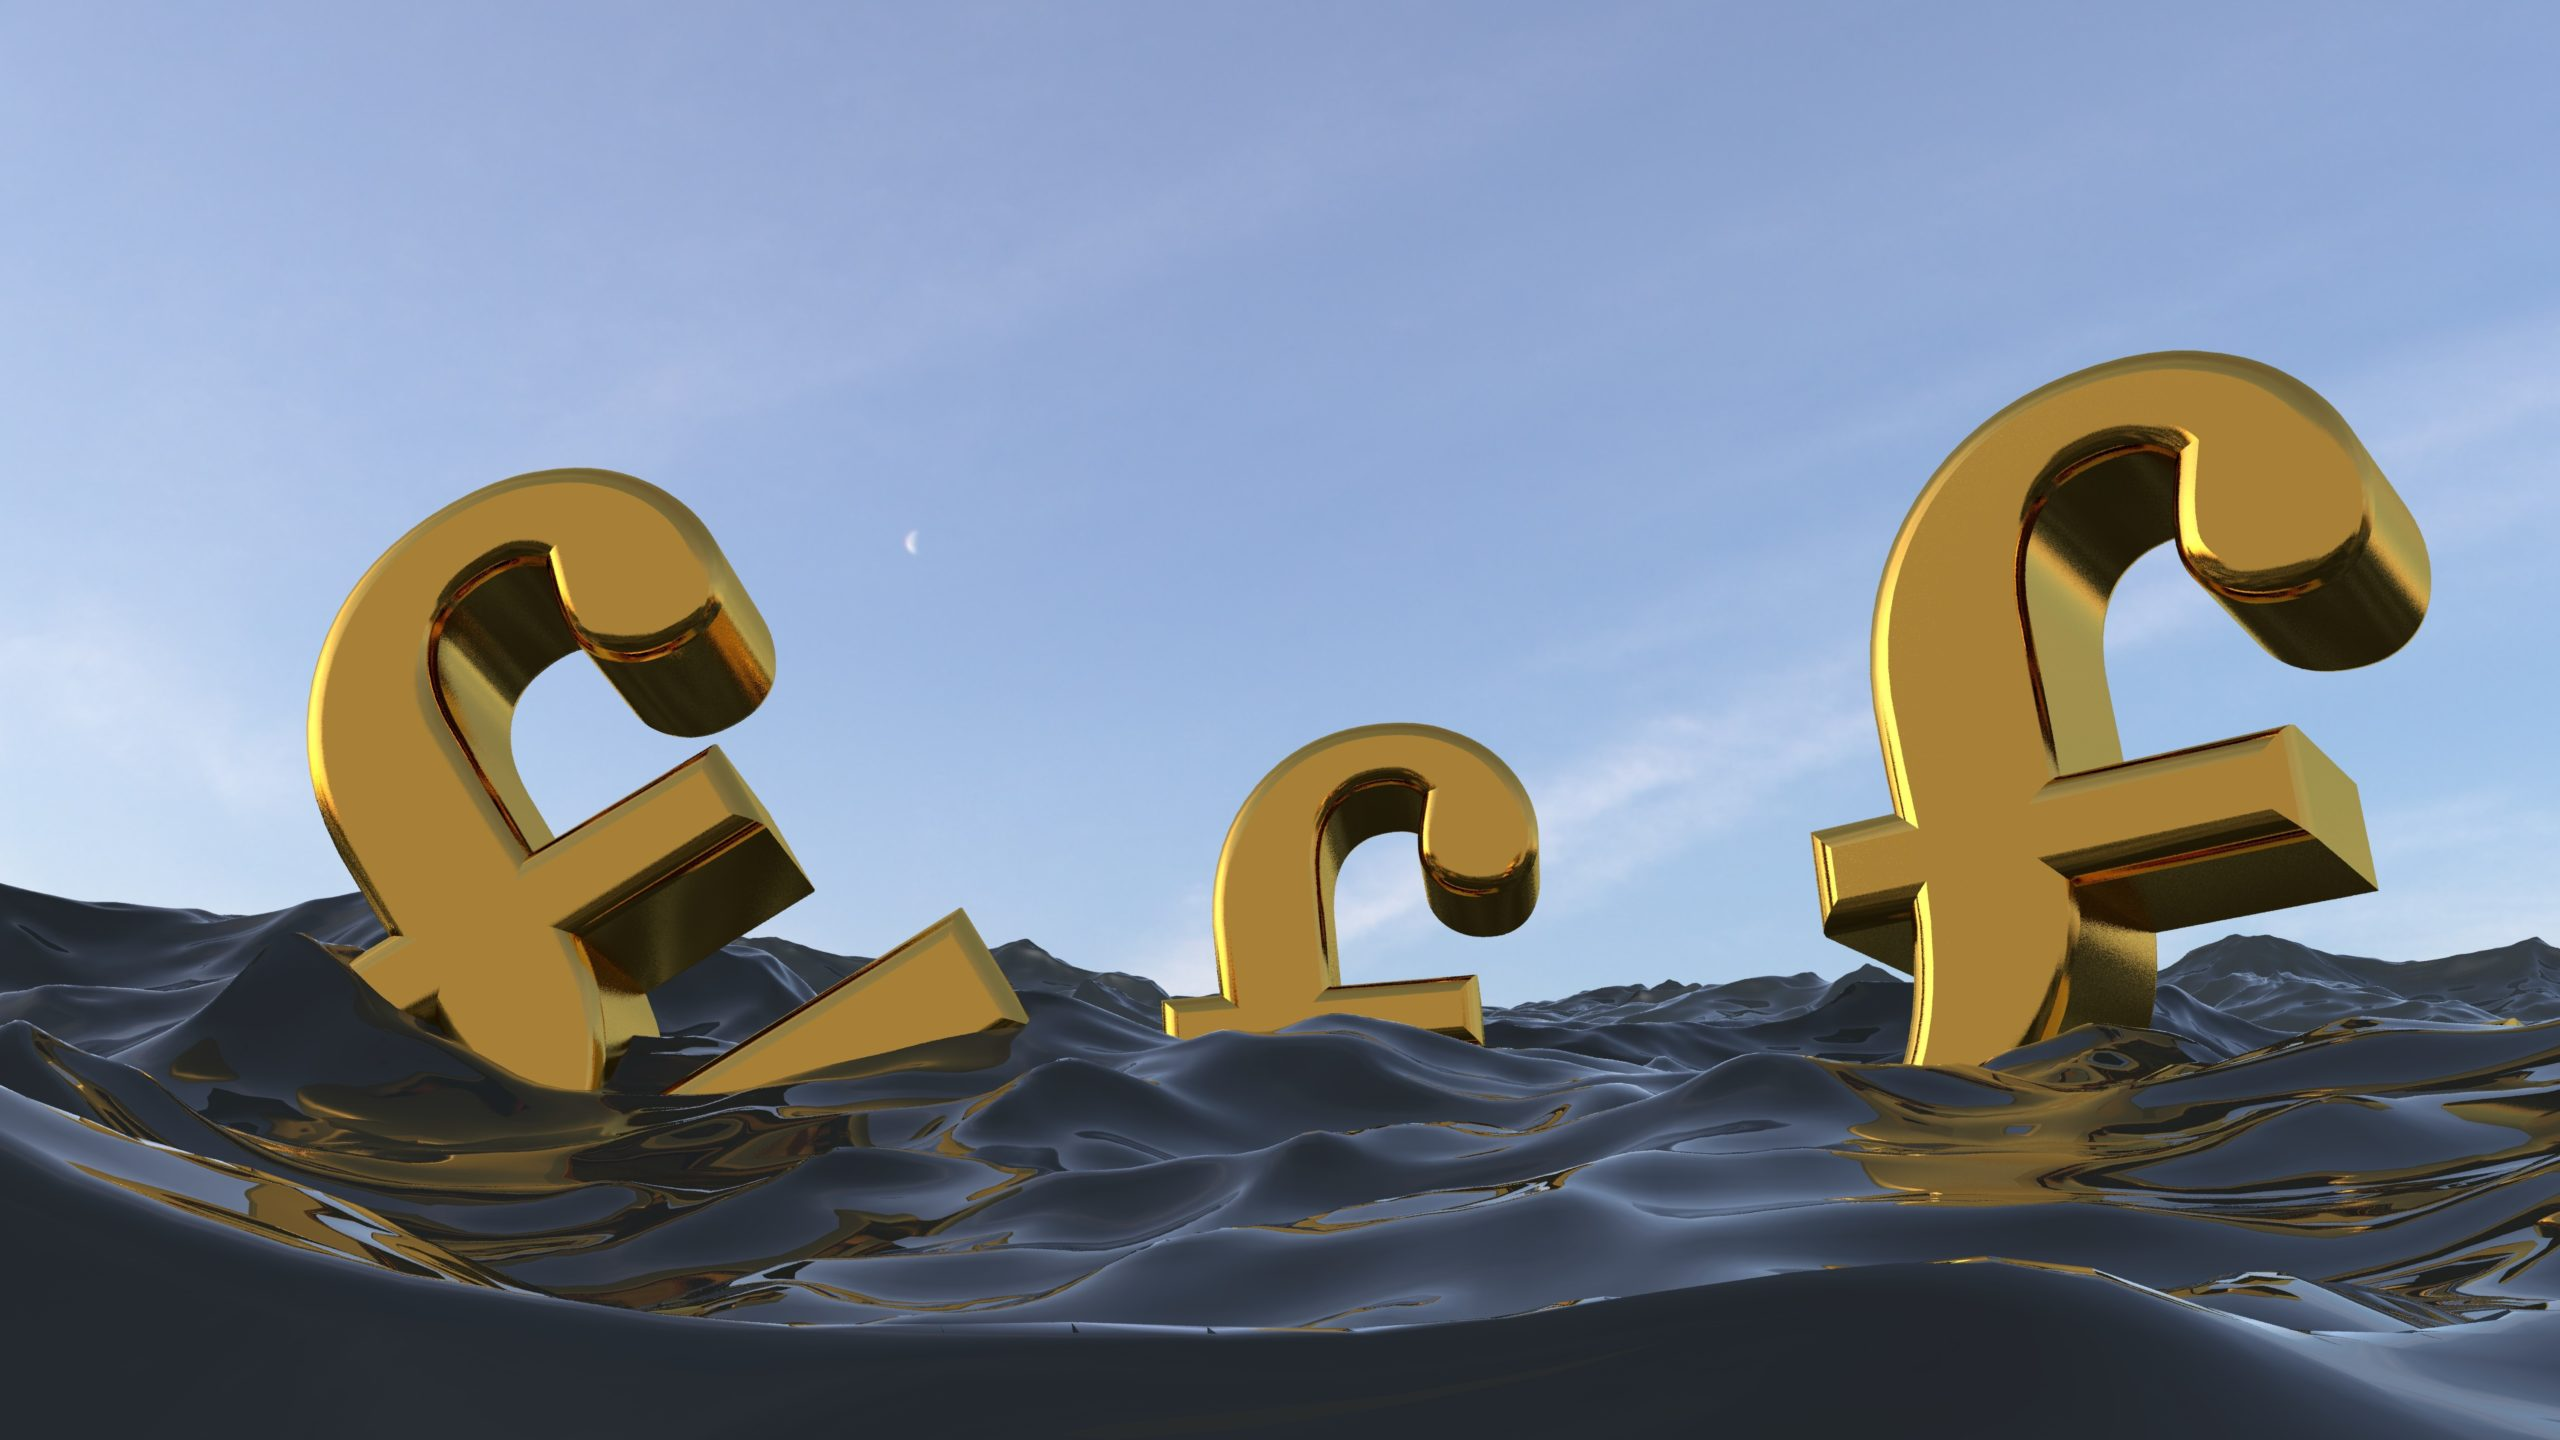 Covid debt drowning small businesses to the tune of £104bn